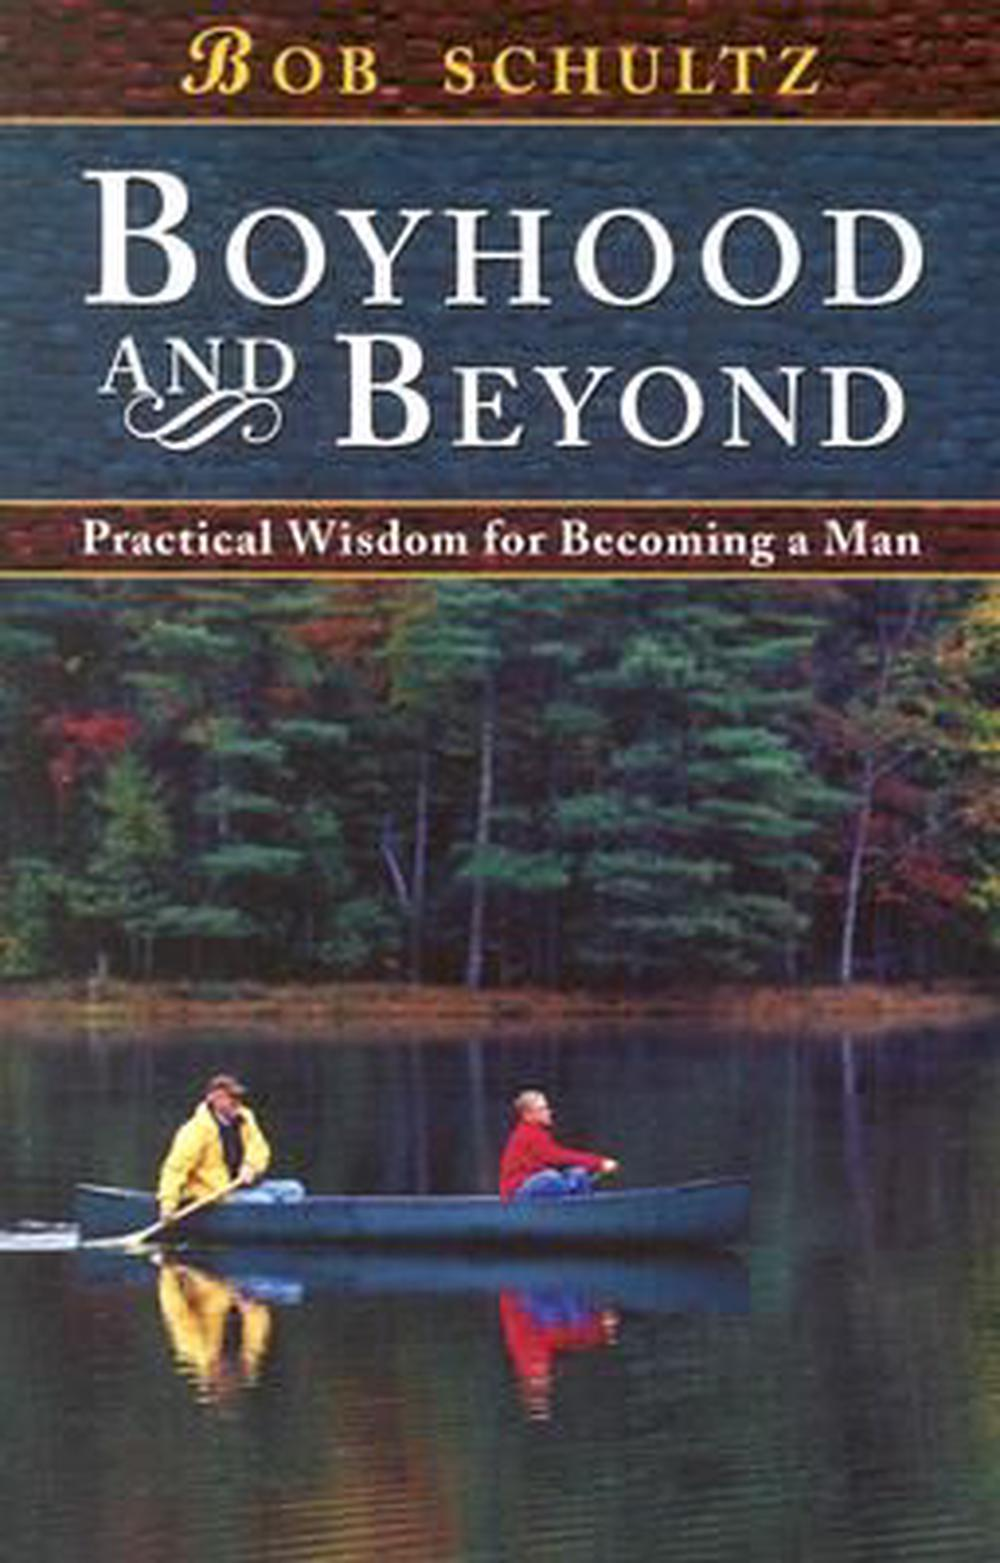 Boyhood and Beyond: Practical Wisdom for Becoming a Man by Bob Schultz, ISBN: 9781883934095